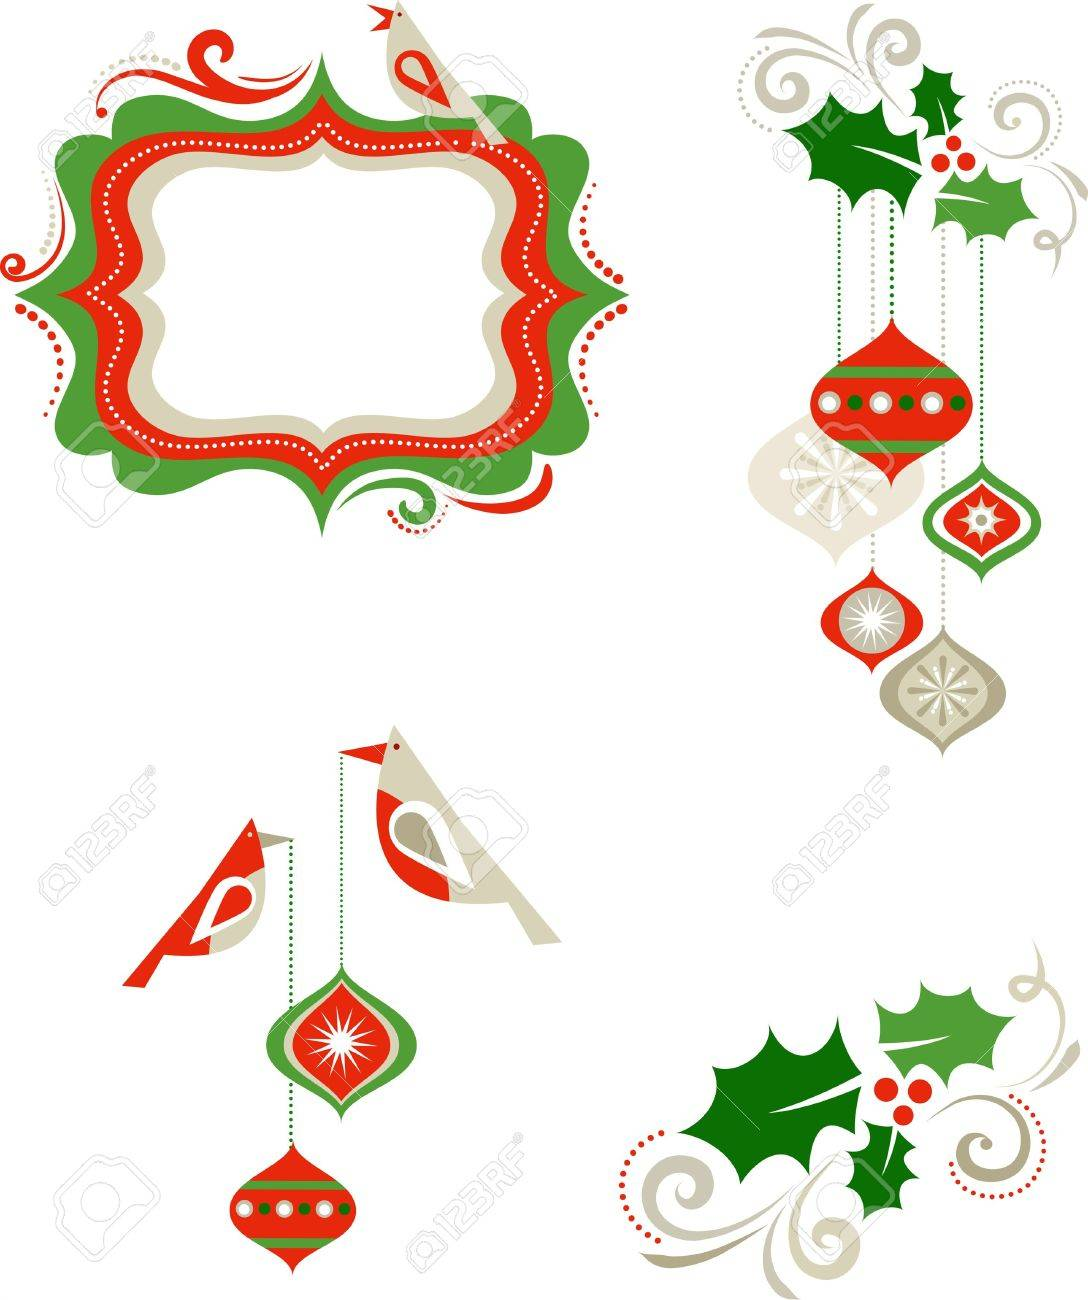 Christmas graphic elements - frame, birds and decorations Stock Vector - 7977994